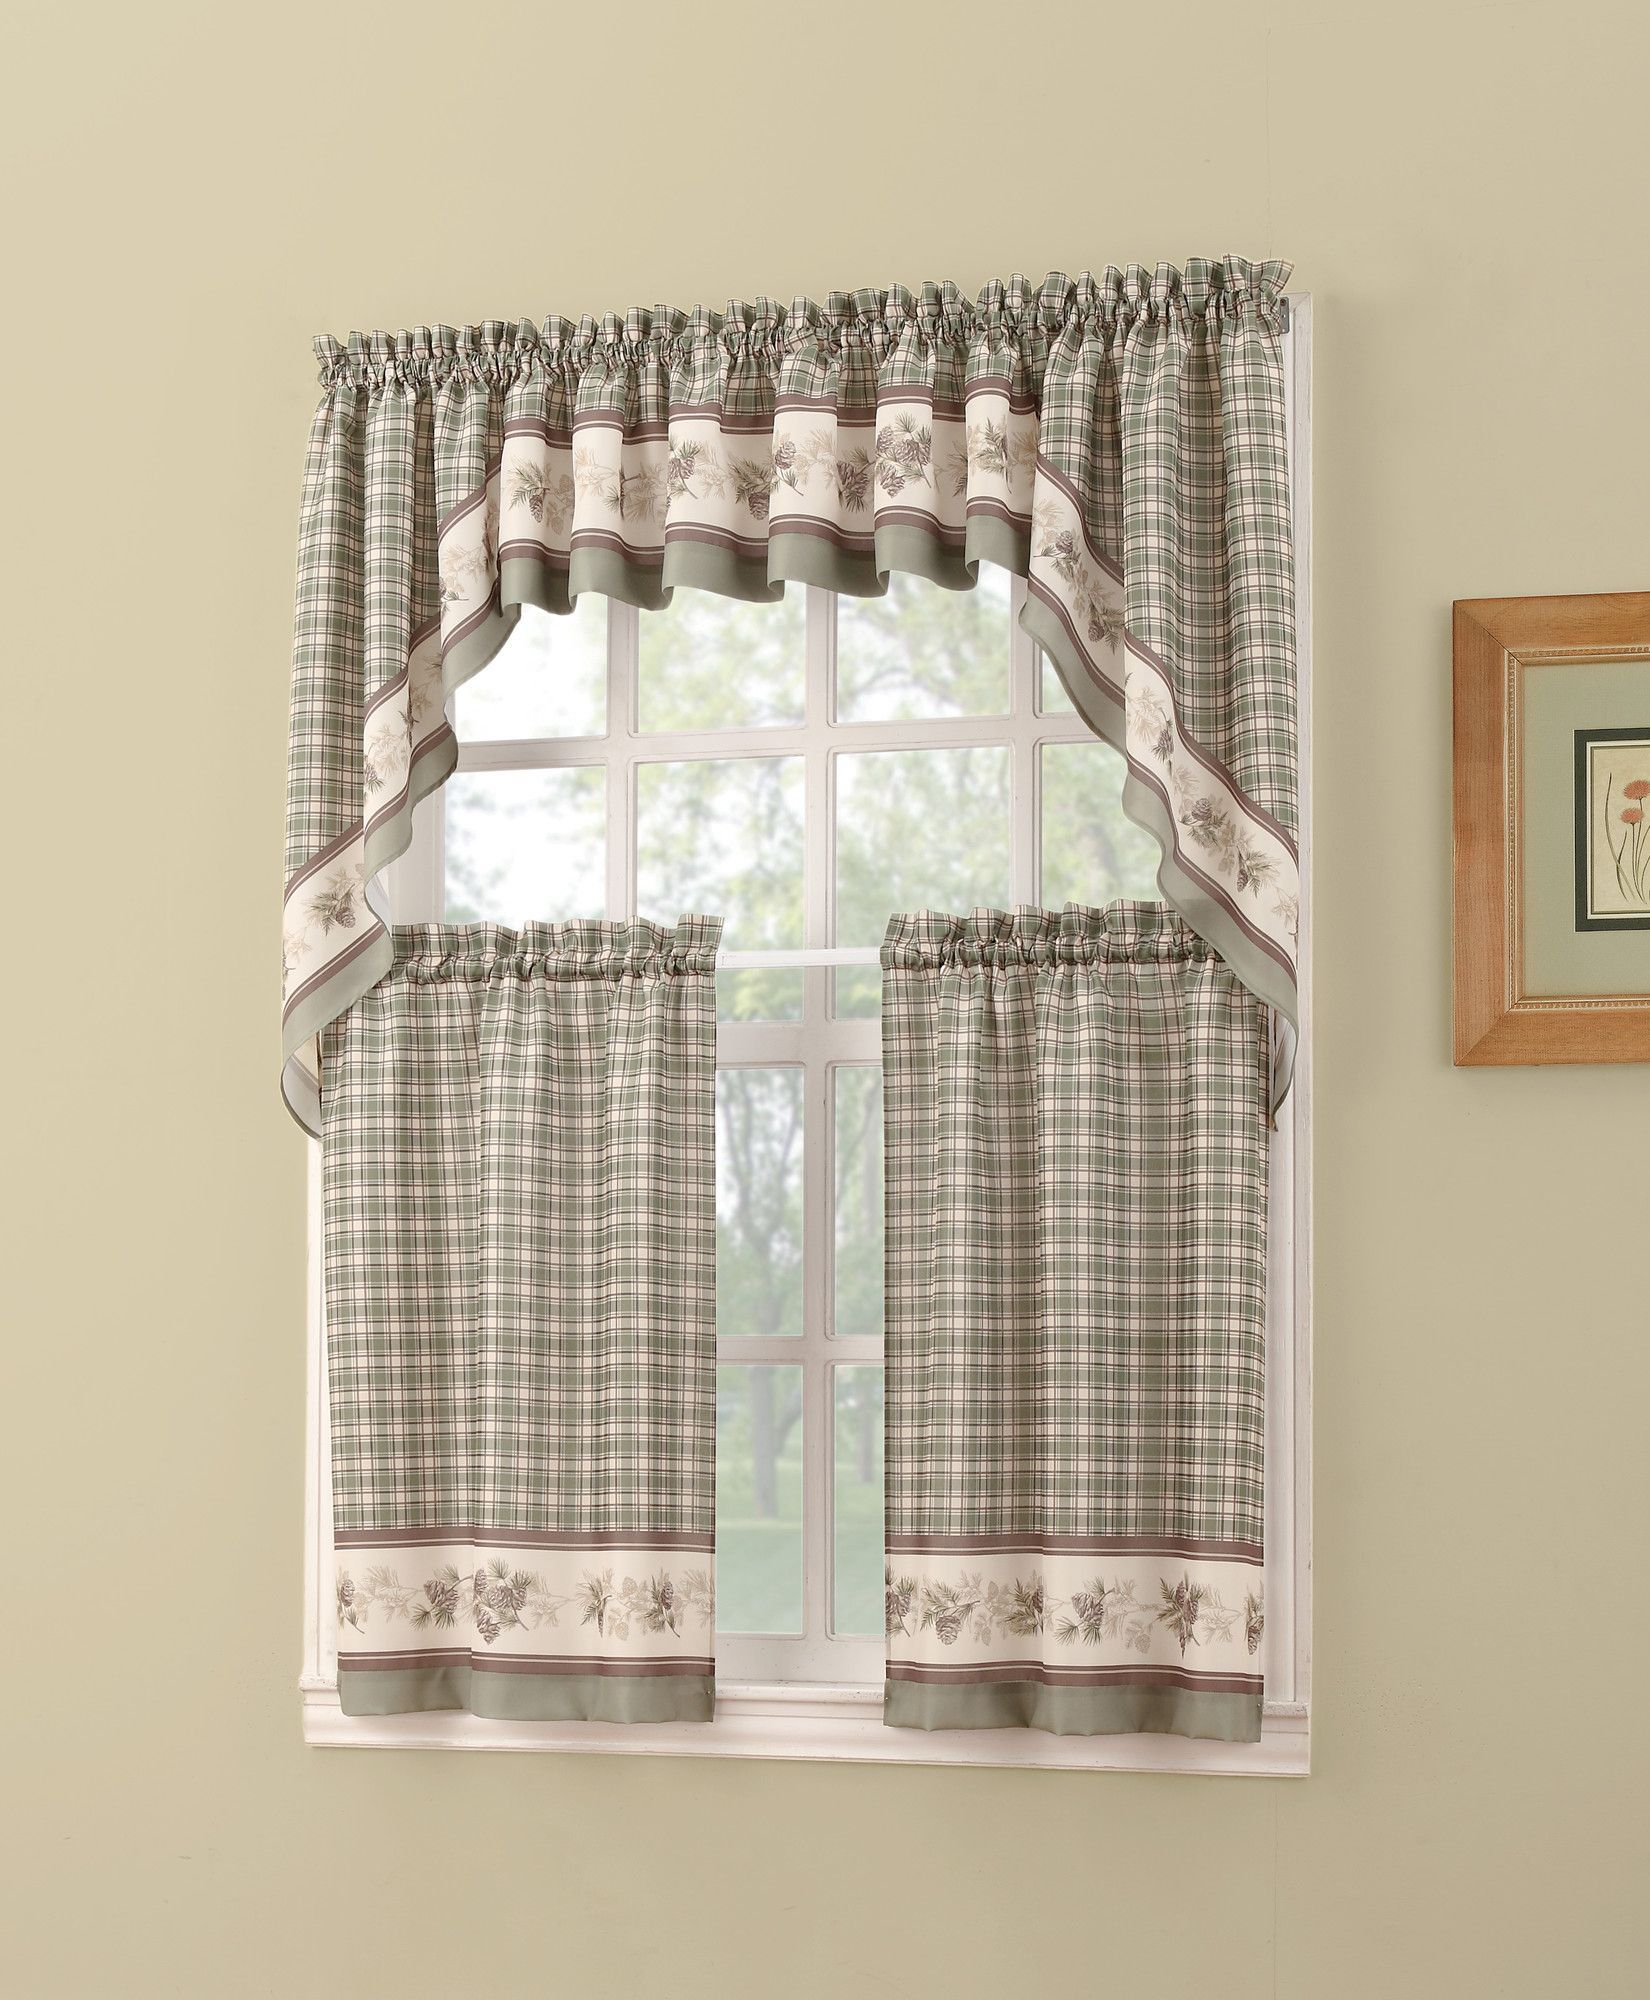 Berkshire Rod Pocket Tier Set | Curtains | Curtains, Valance Inside Cotton Blend Ivy Floral Tier Curtain And Swag Sets (View 2 of 20)